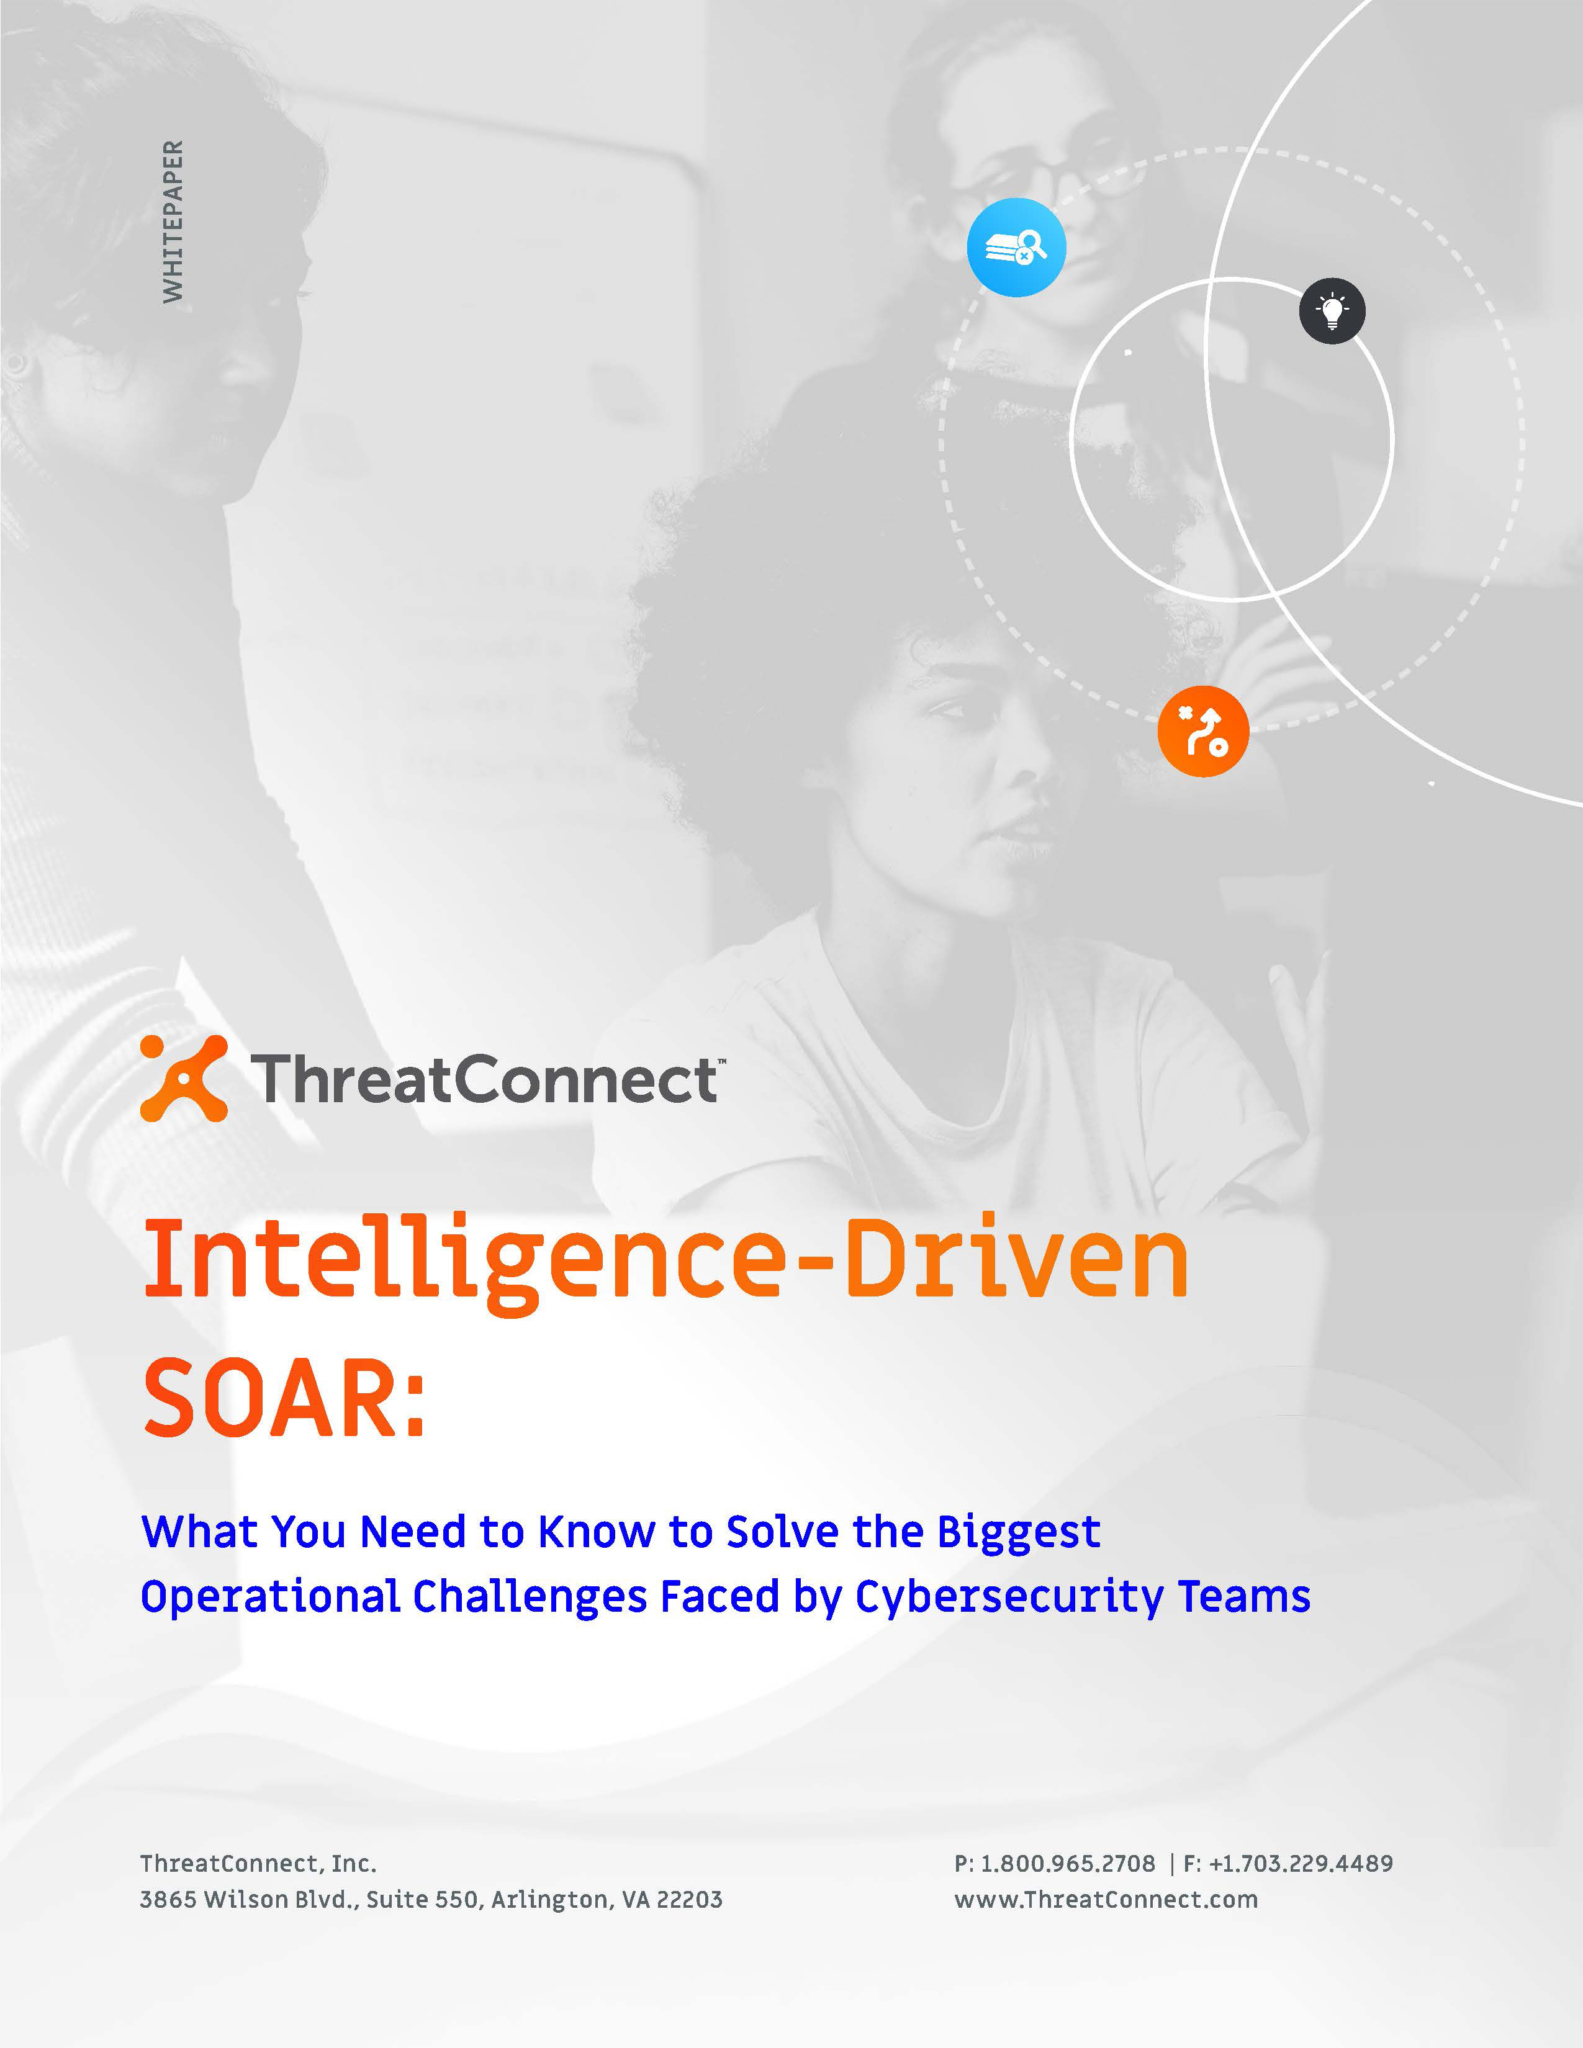 intelligence-driven SOAR, orchestration, ThreatConnect